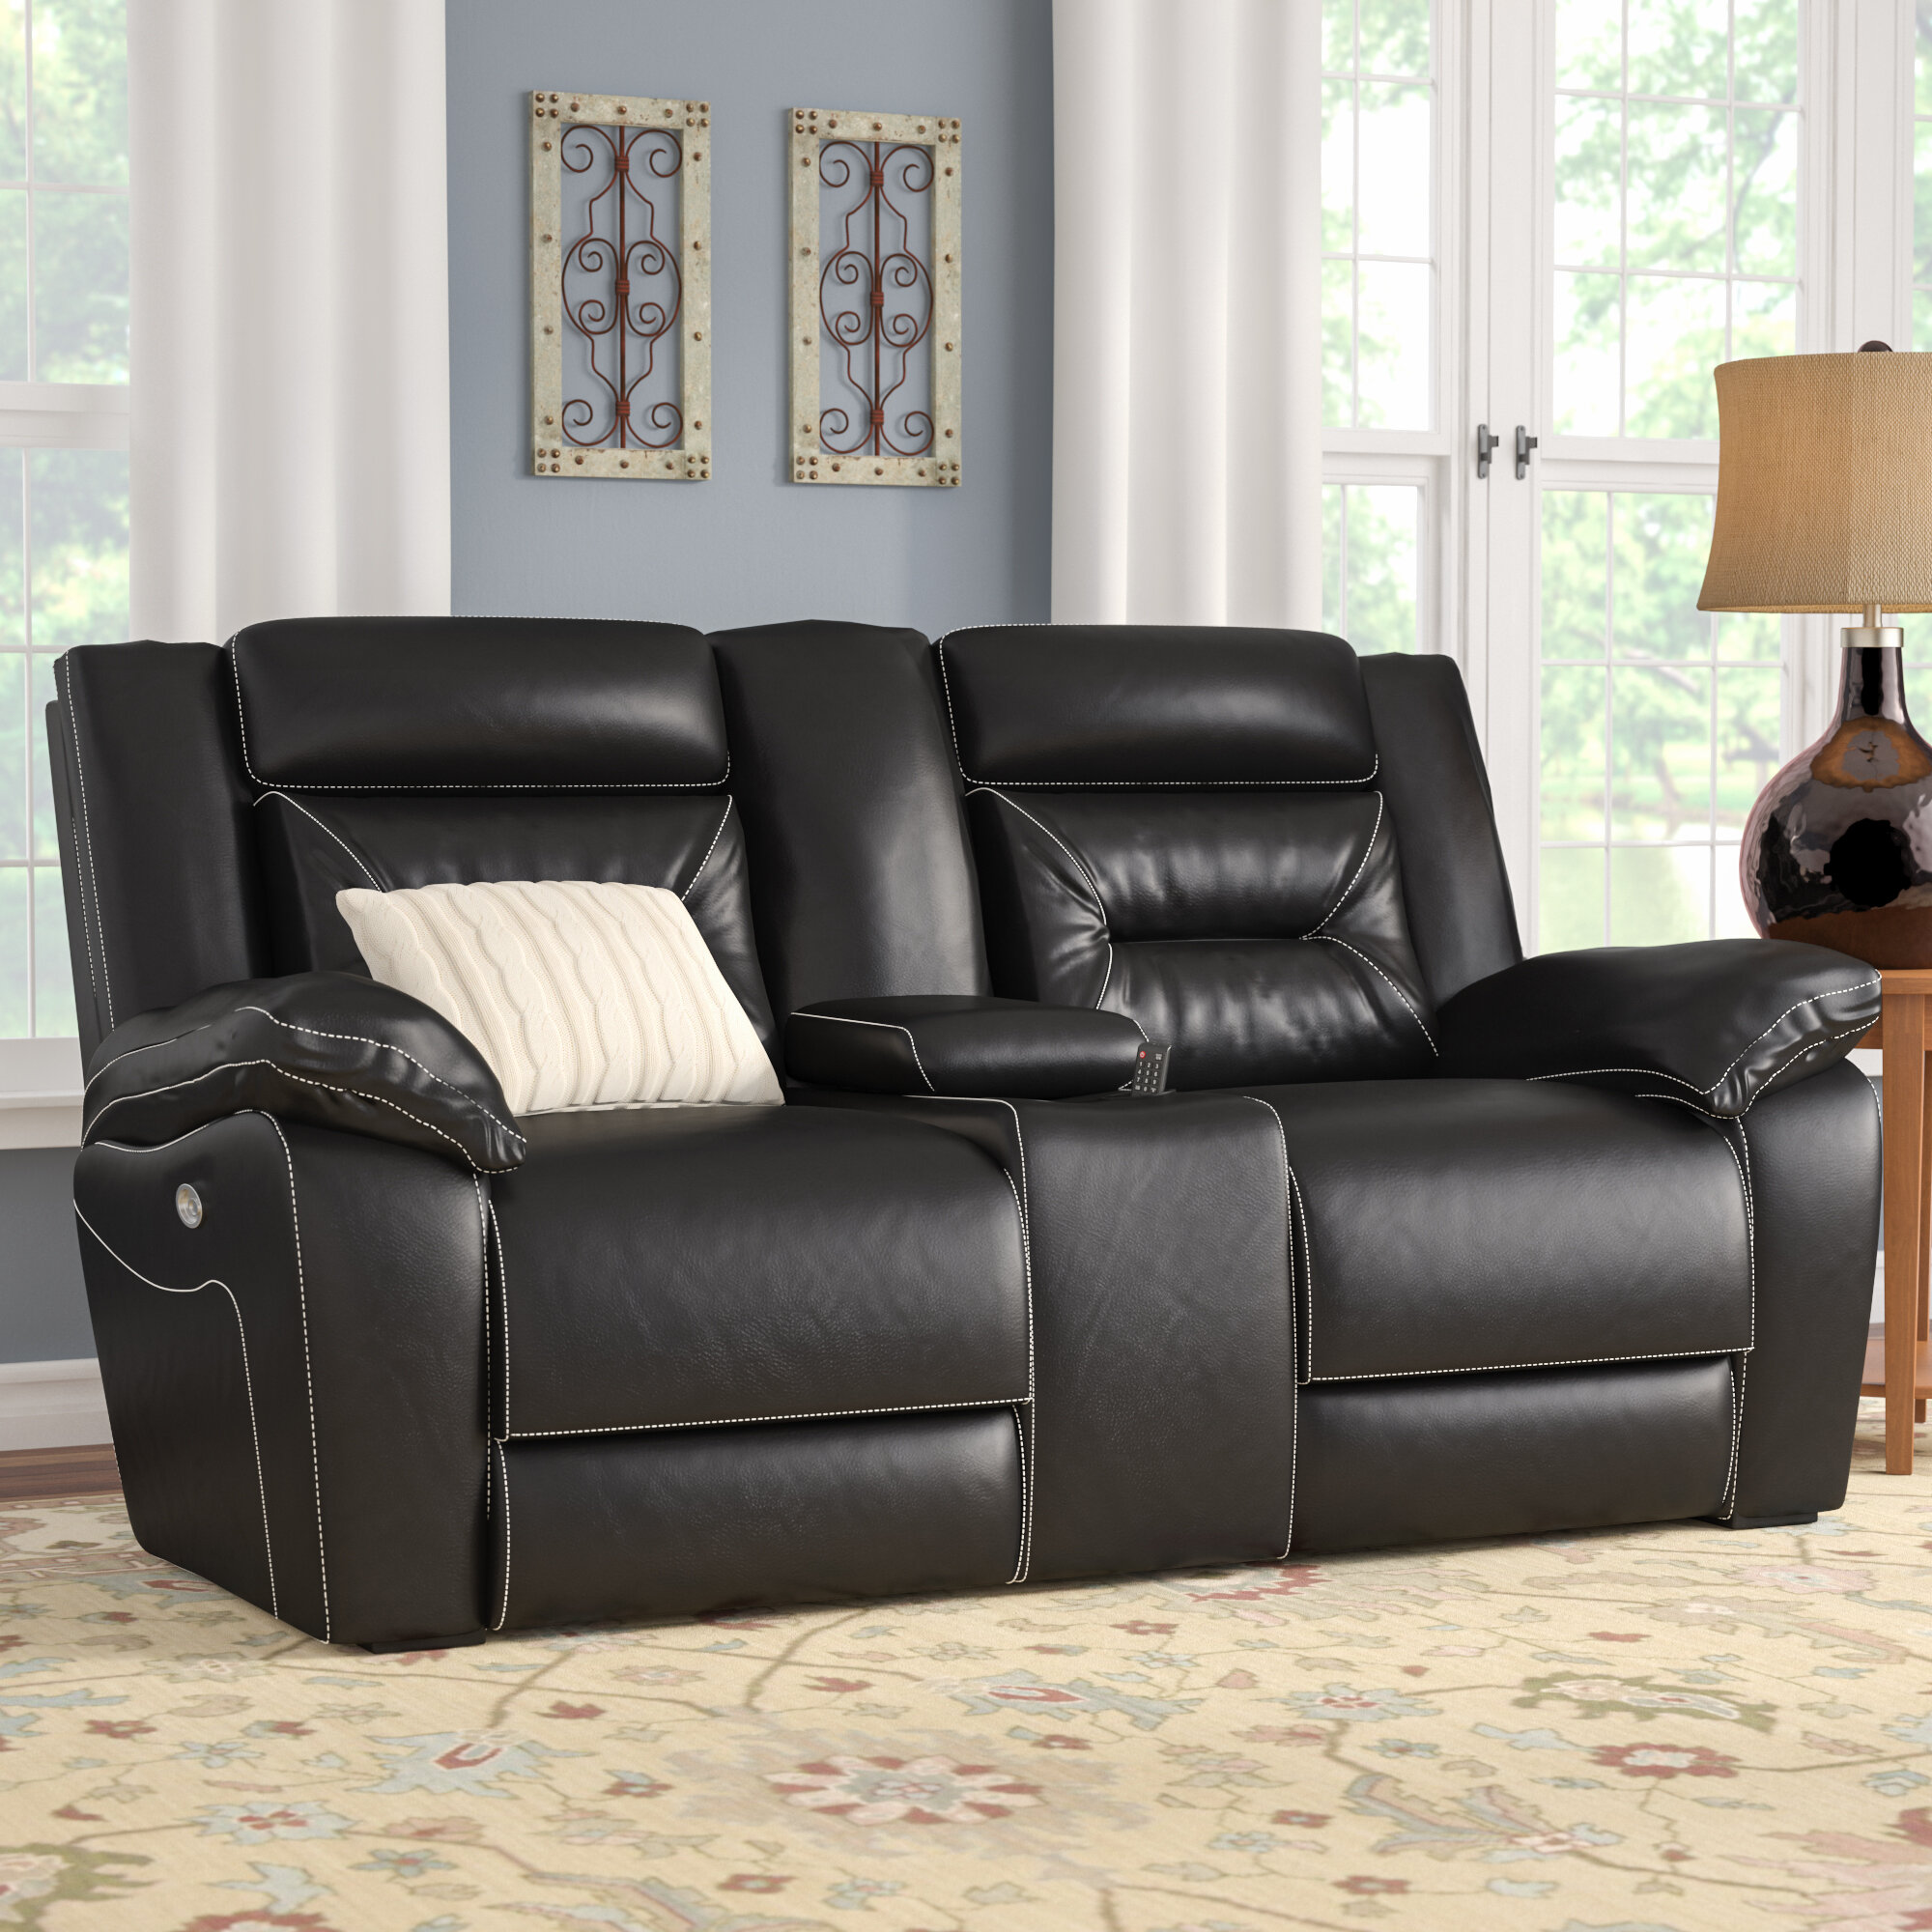 Andover Mills Simmons Upholstery Chadbourne Power Double Motion Console  Reclining Sofa | Wayfair